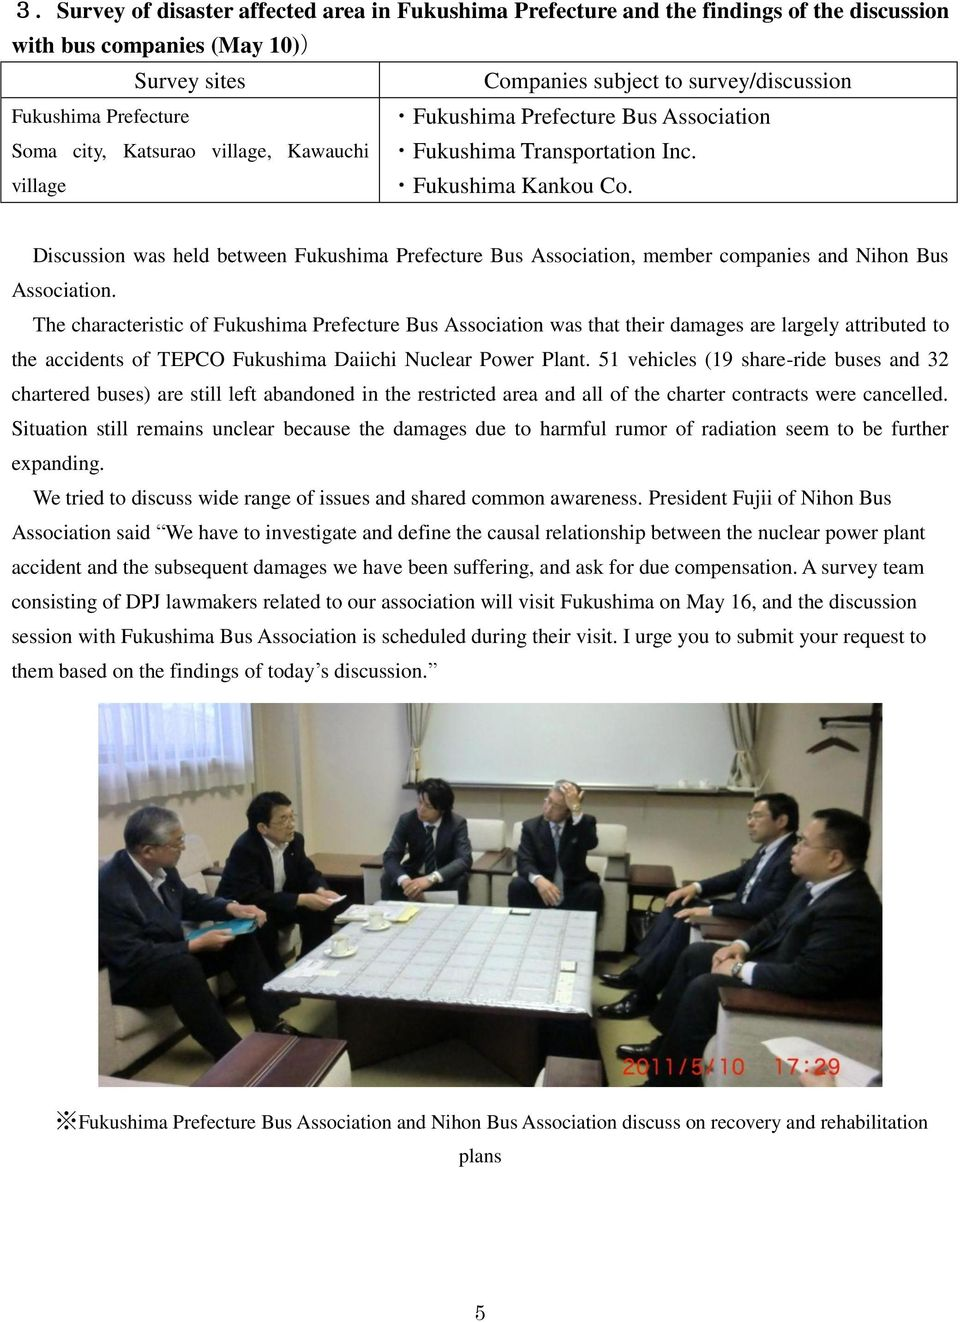 Discussion was held between Fukushima Prefecture Bus Association, member companies and Nihon Bus Association.